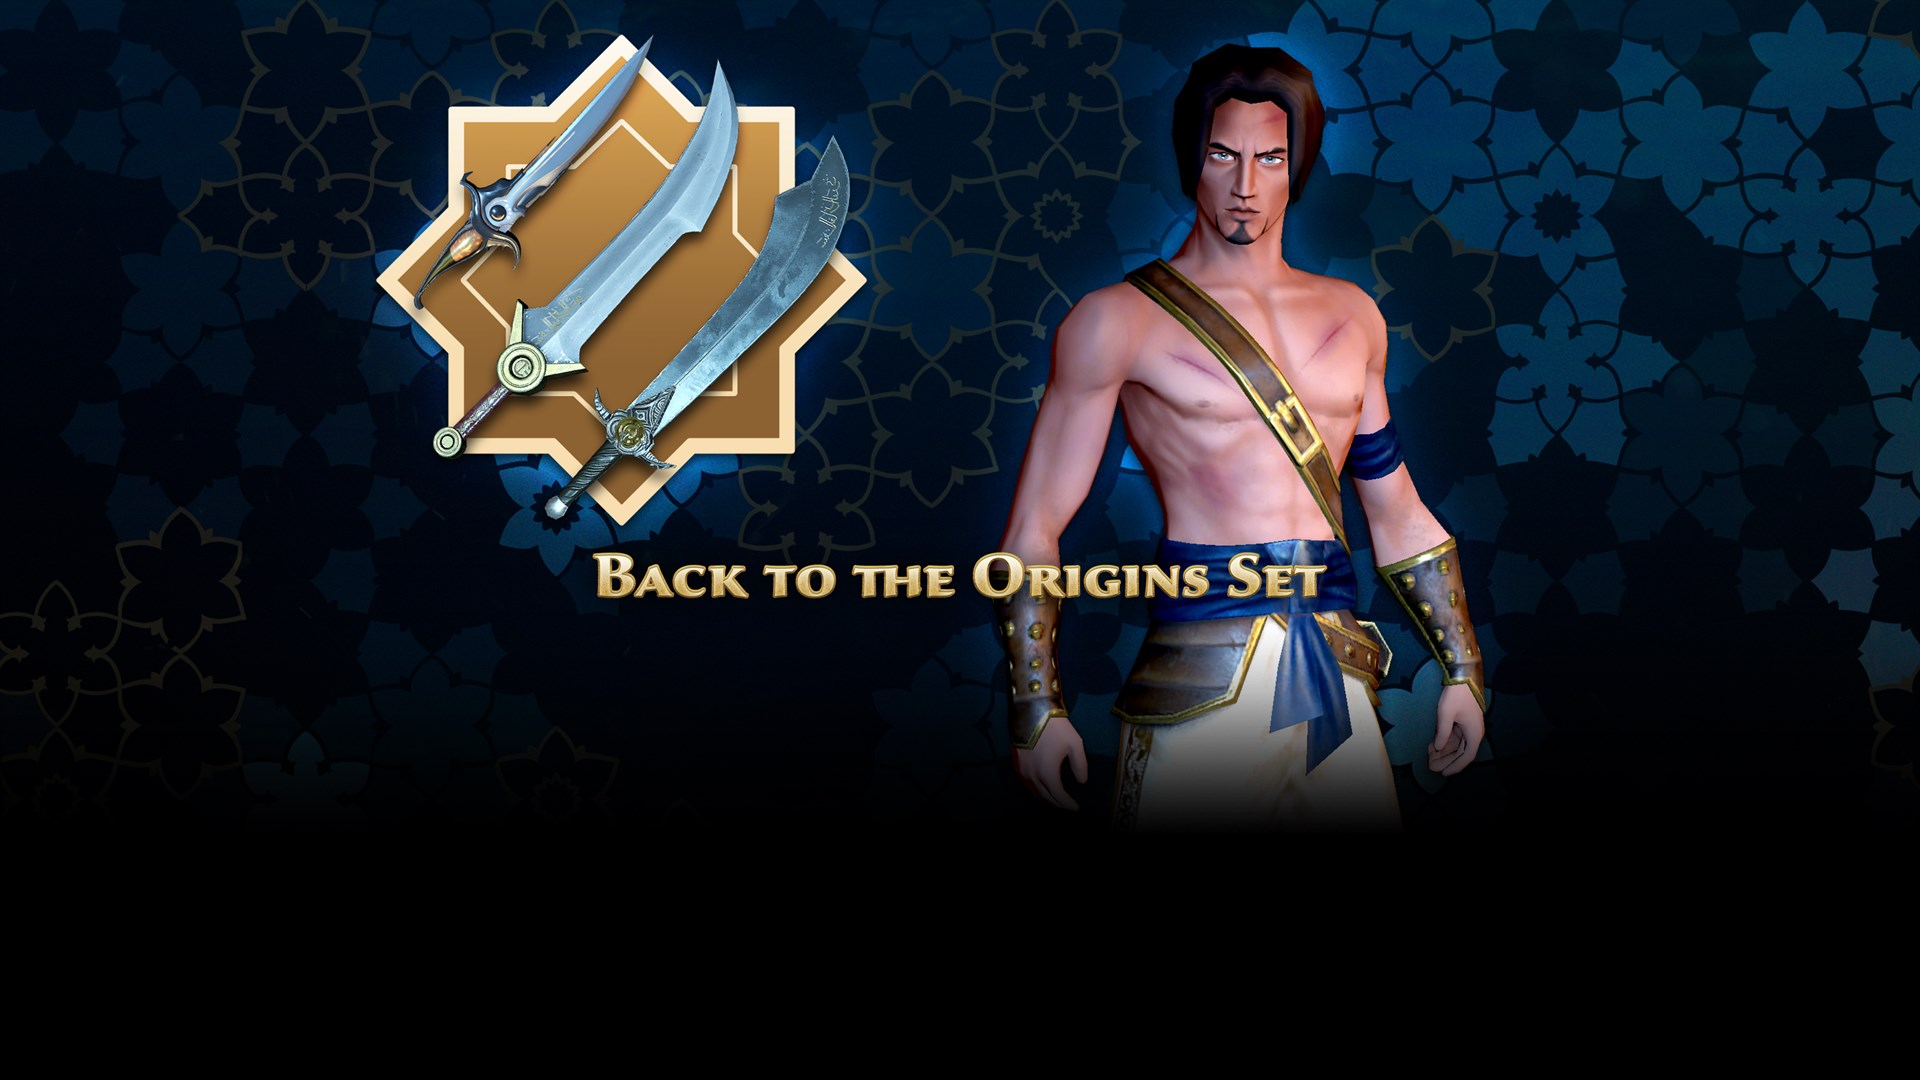 Prince of Persia: The Sands of Time Remake - Back to the Origins Set